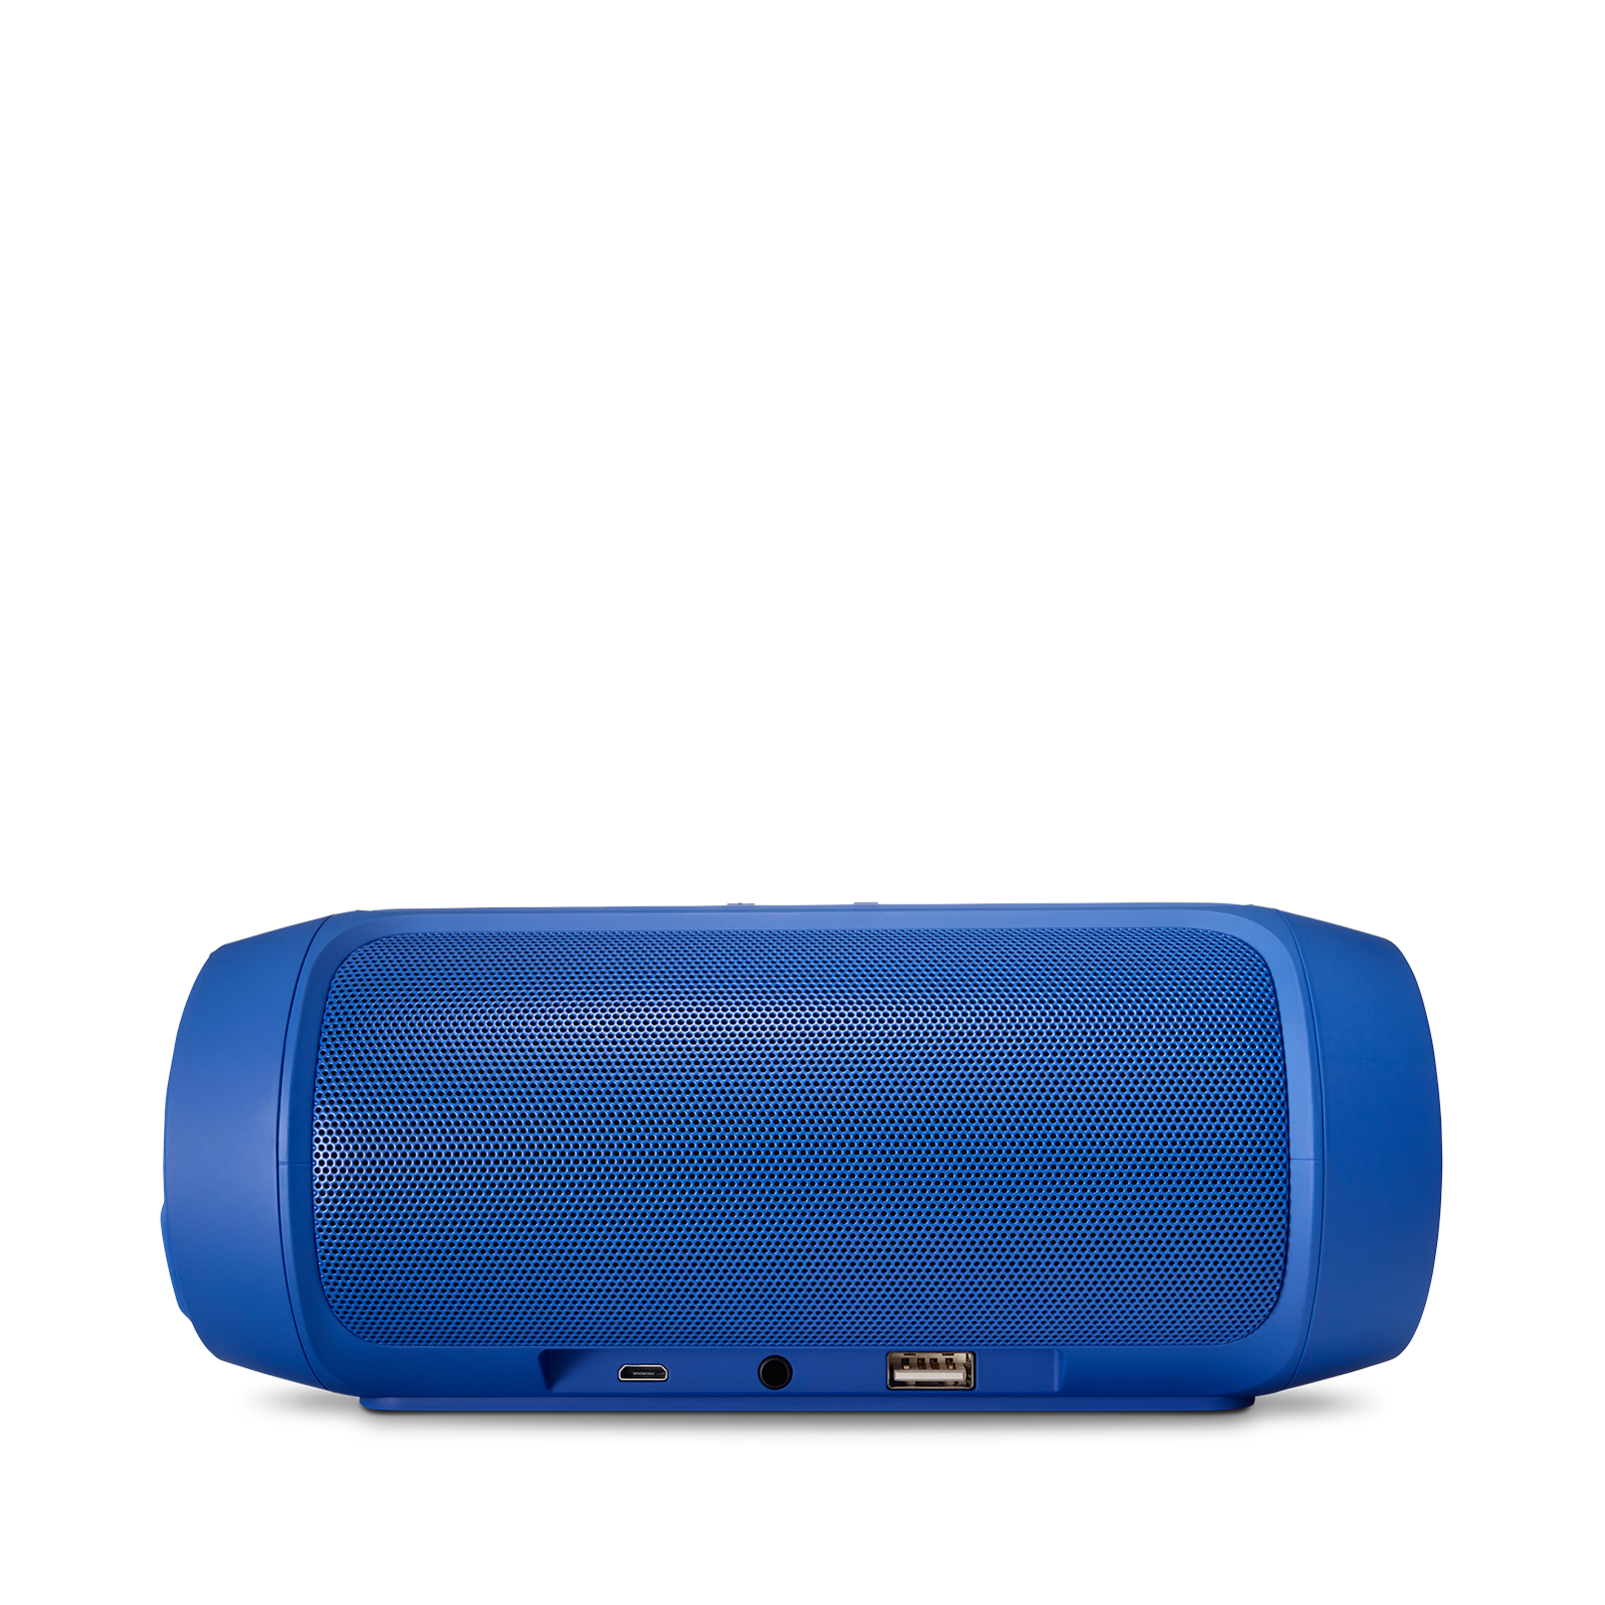 Jbl Charge 2 Full Featured Splashproof Portable Speaker With High